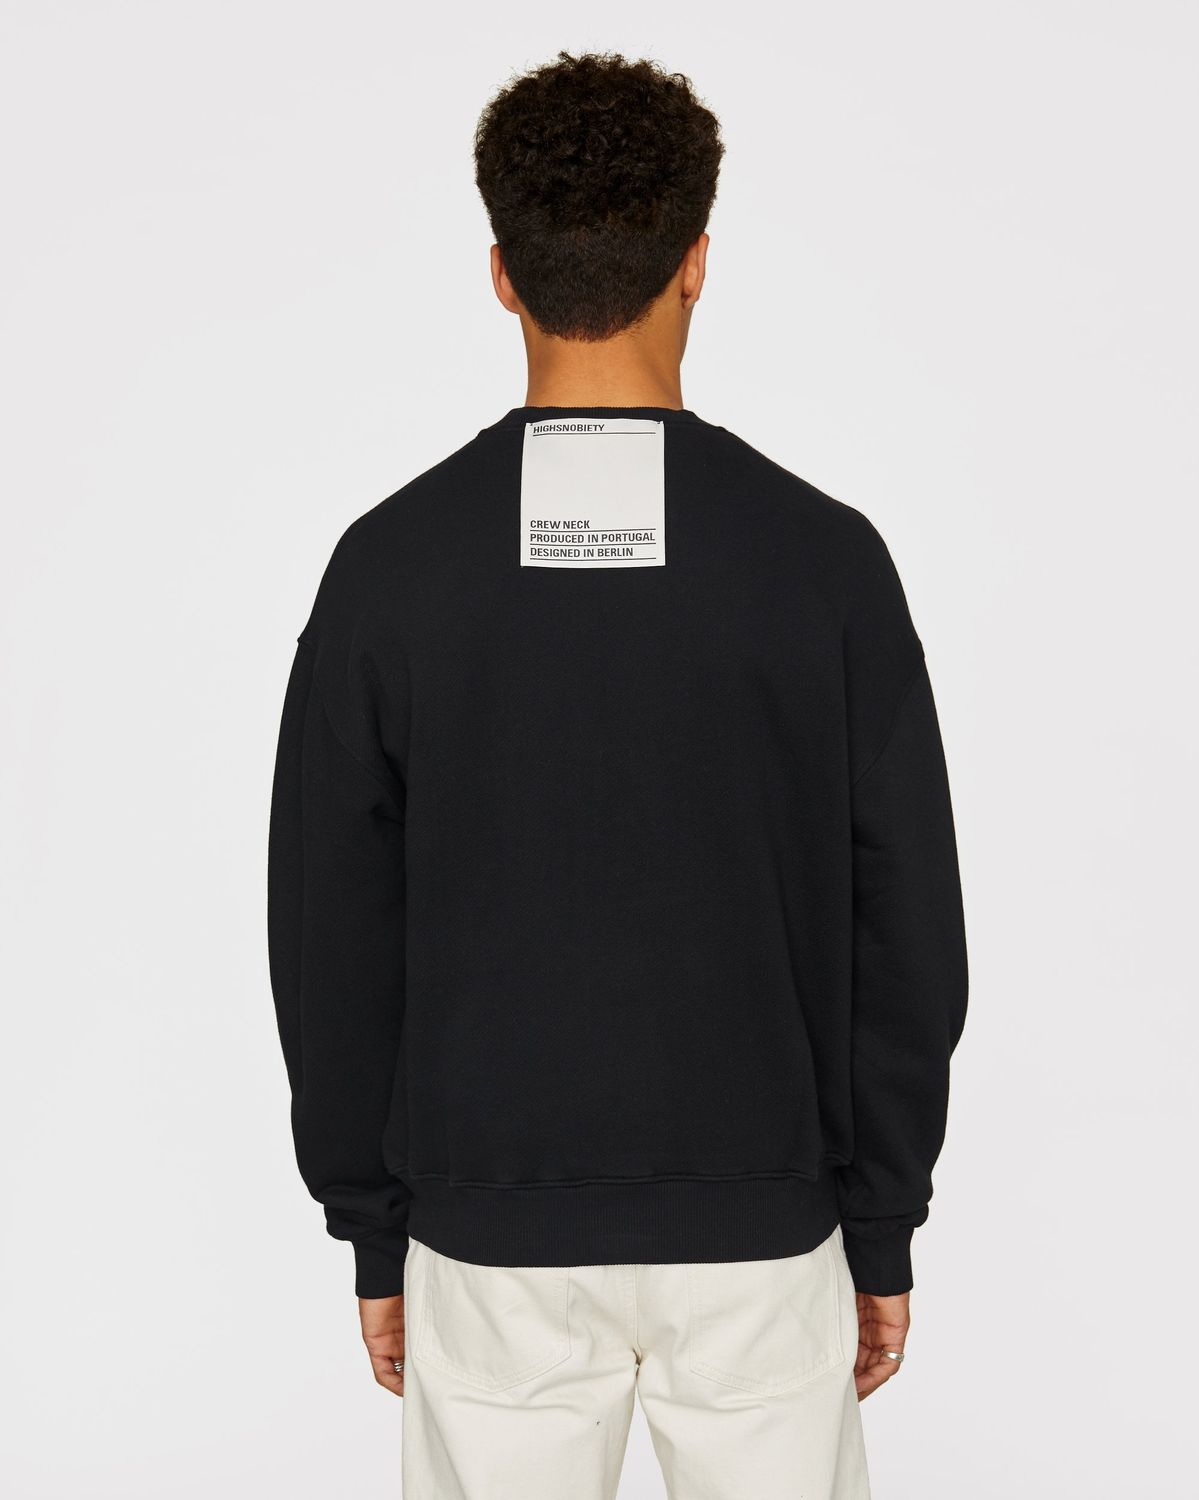 Highsnobiety Staples - Sweatshirt Black - Image 3